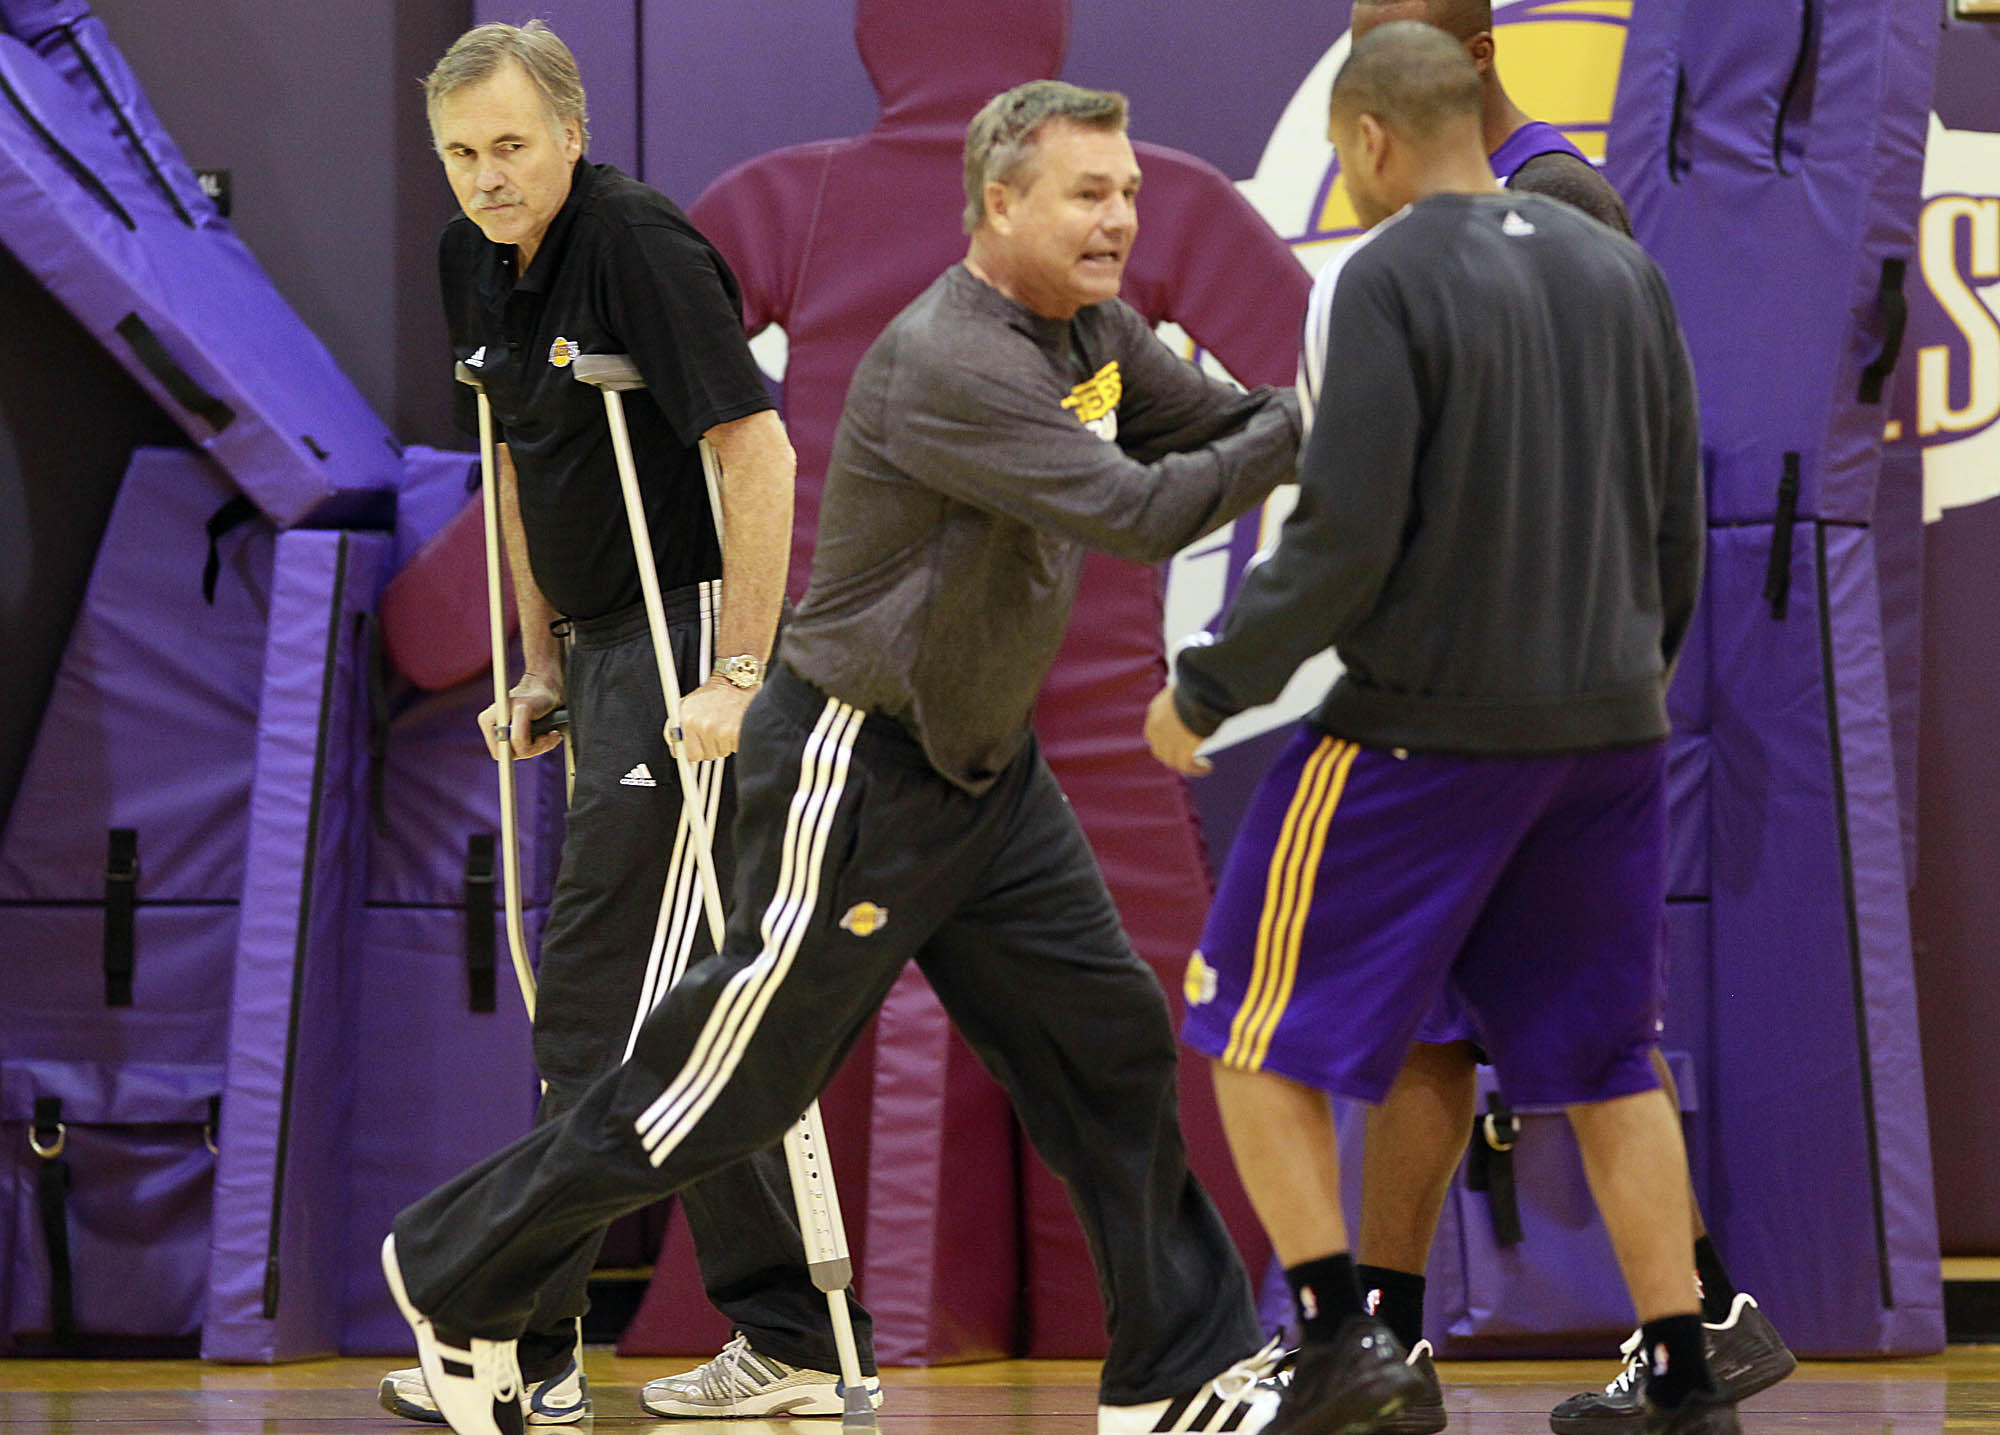 Dan D'Antoni coaches Lakers players during a practice in 2012 while his brother, head coach Mike D'Antoni, watches.